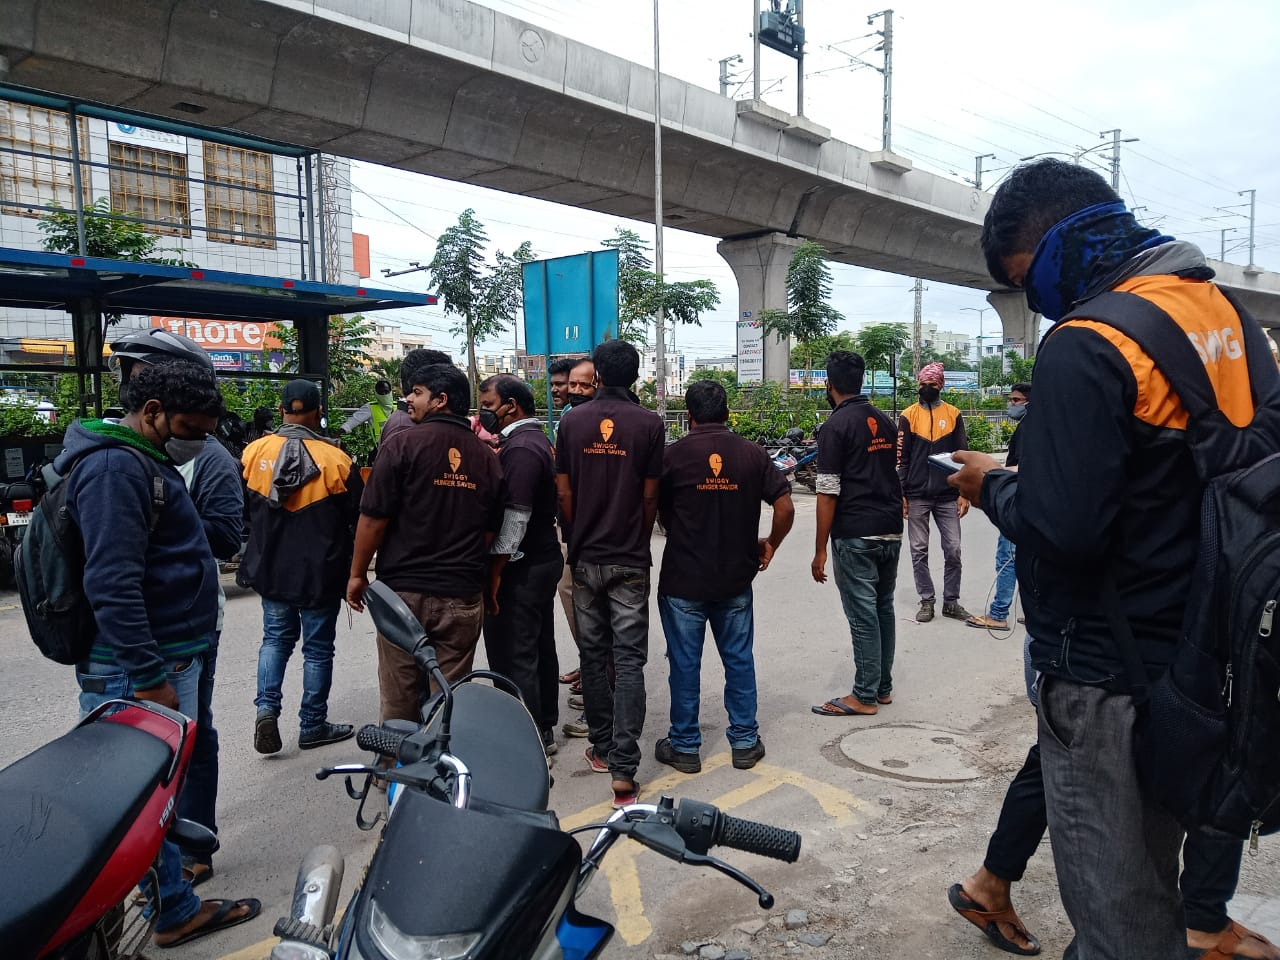 Swiggy delivery executive strike in Hyderabad